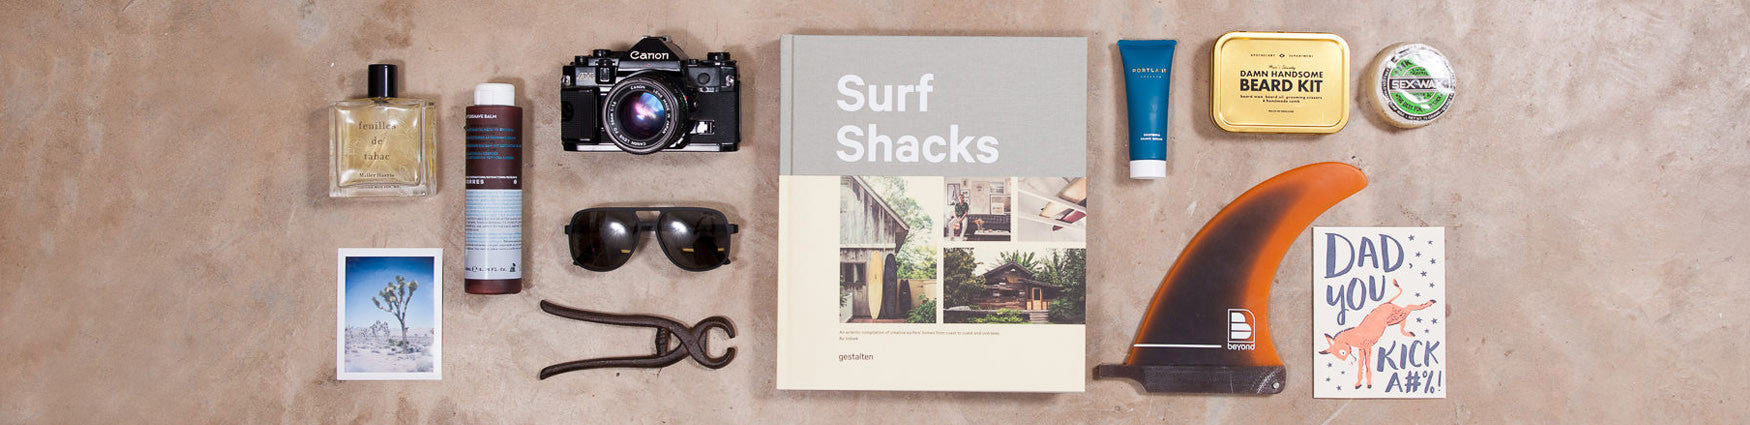 Father's Day gifts featuring Surf Shacks from Gestalten and Men's Society beard kit